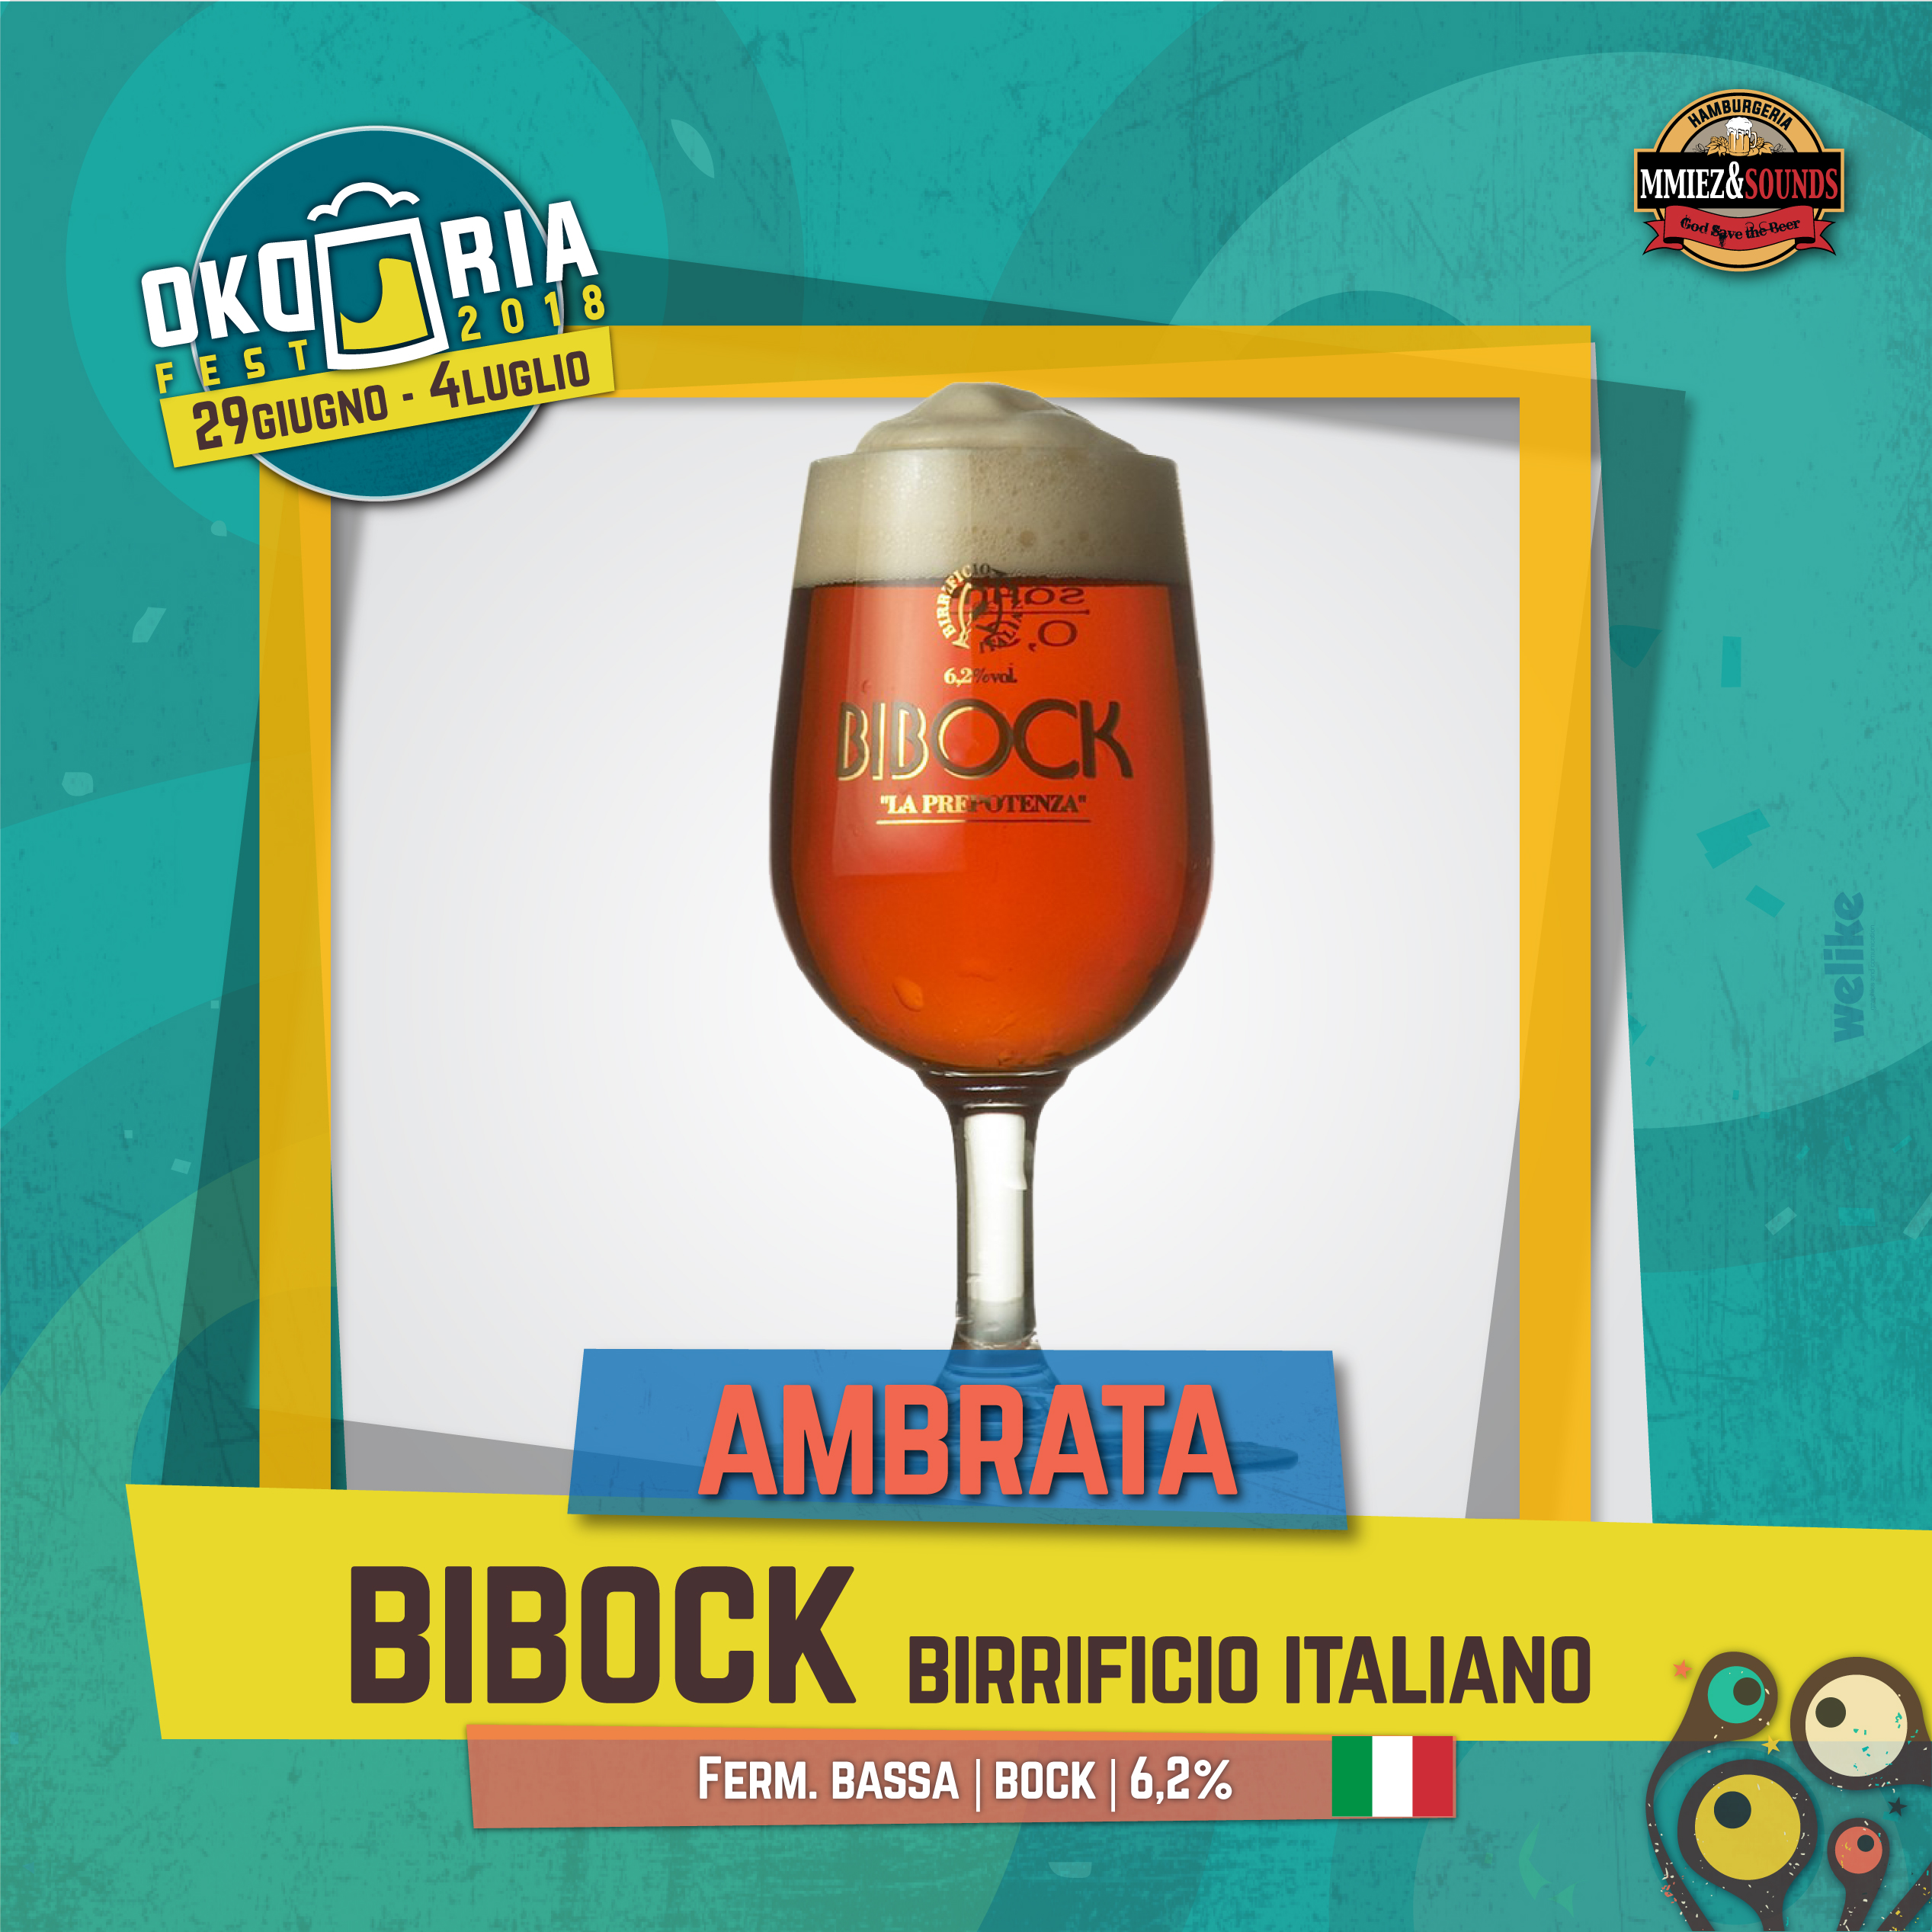 Birrificio Italiano Bibock